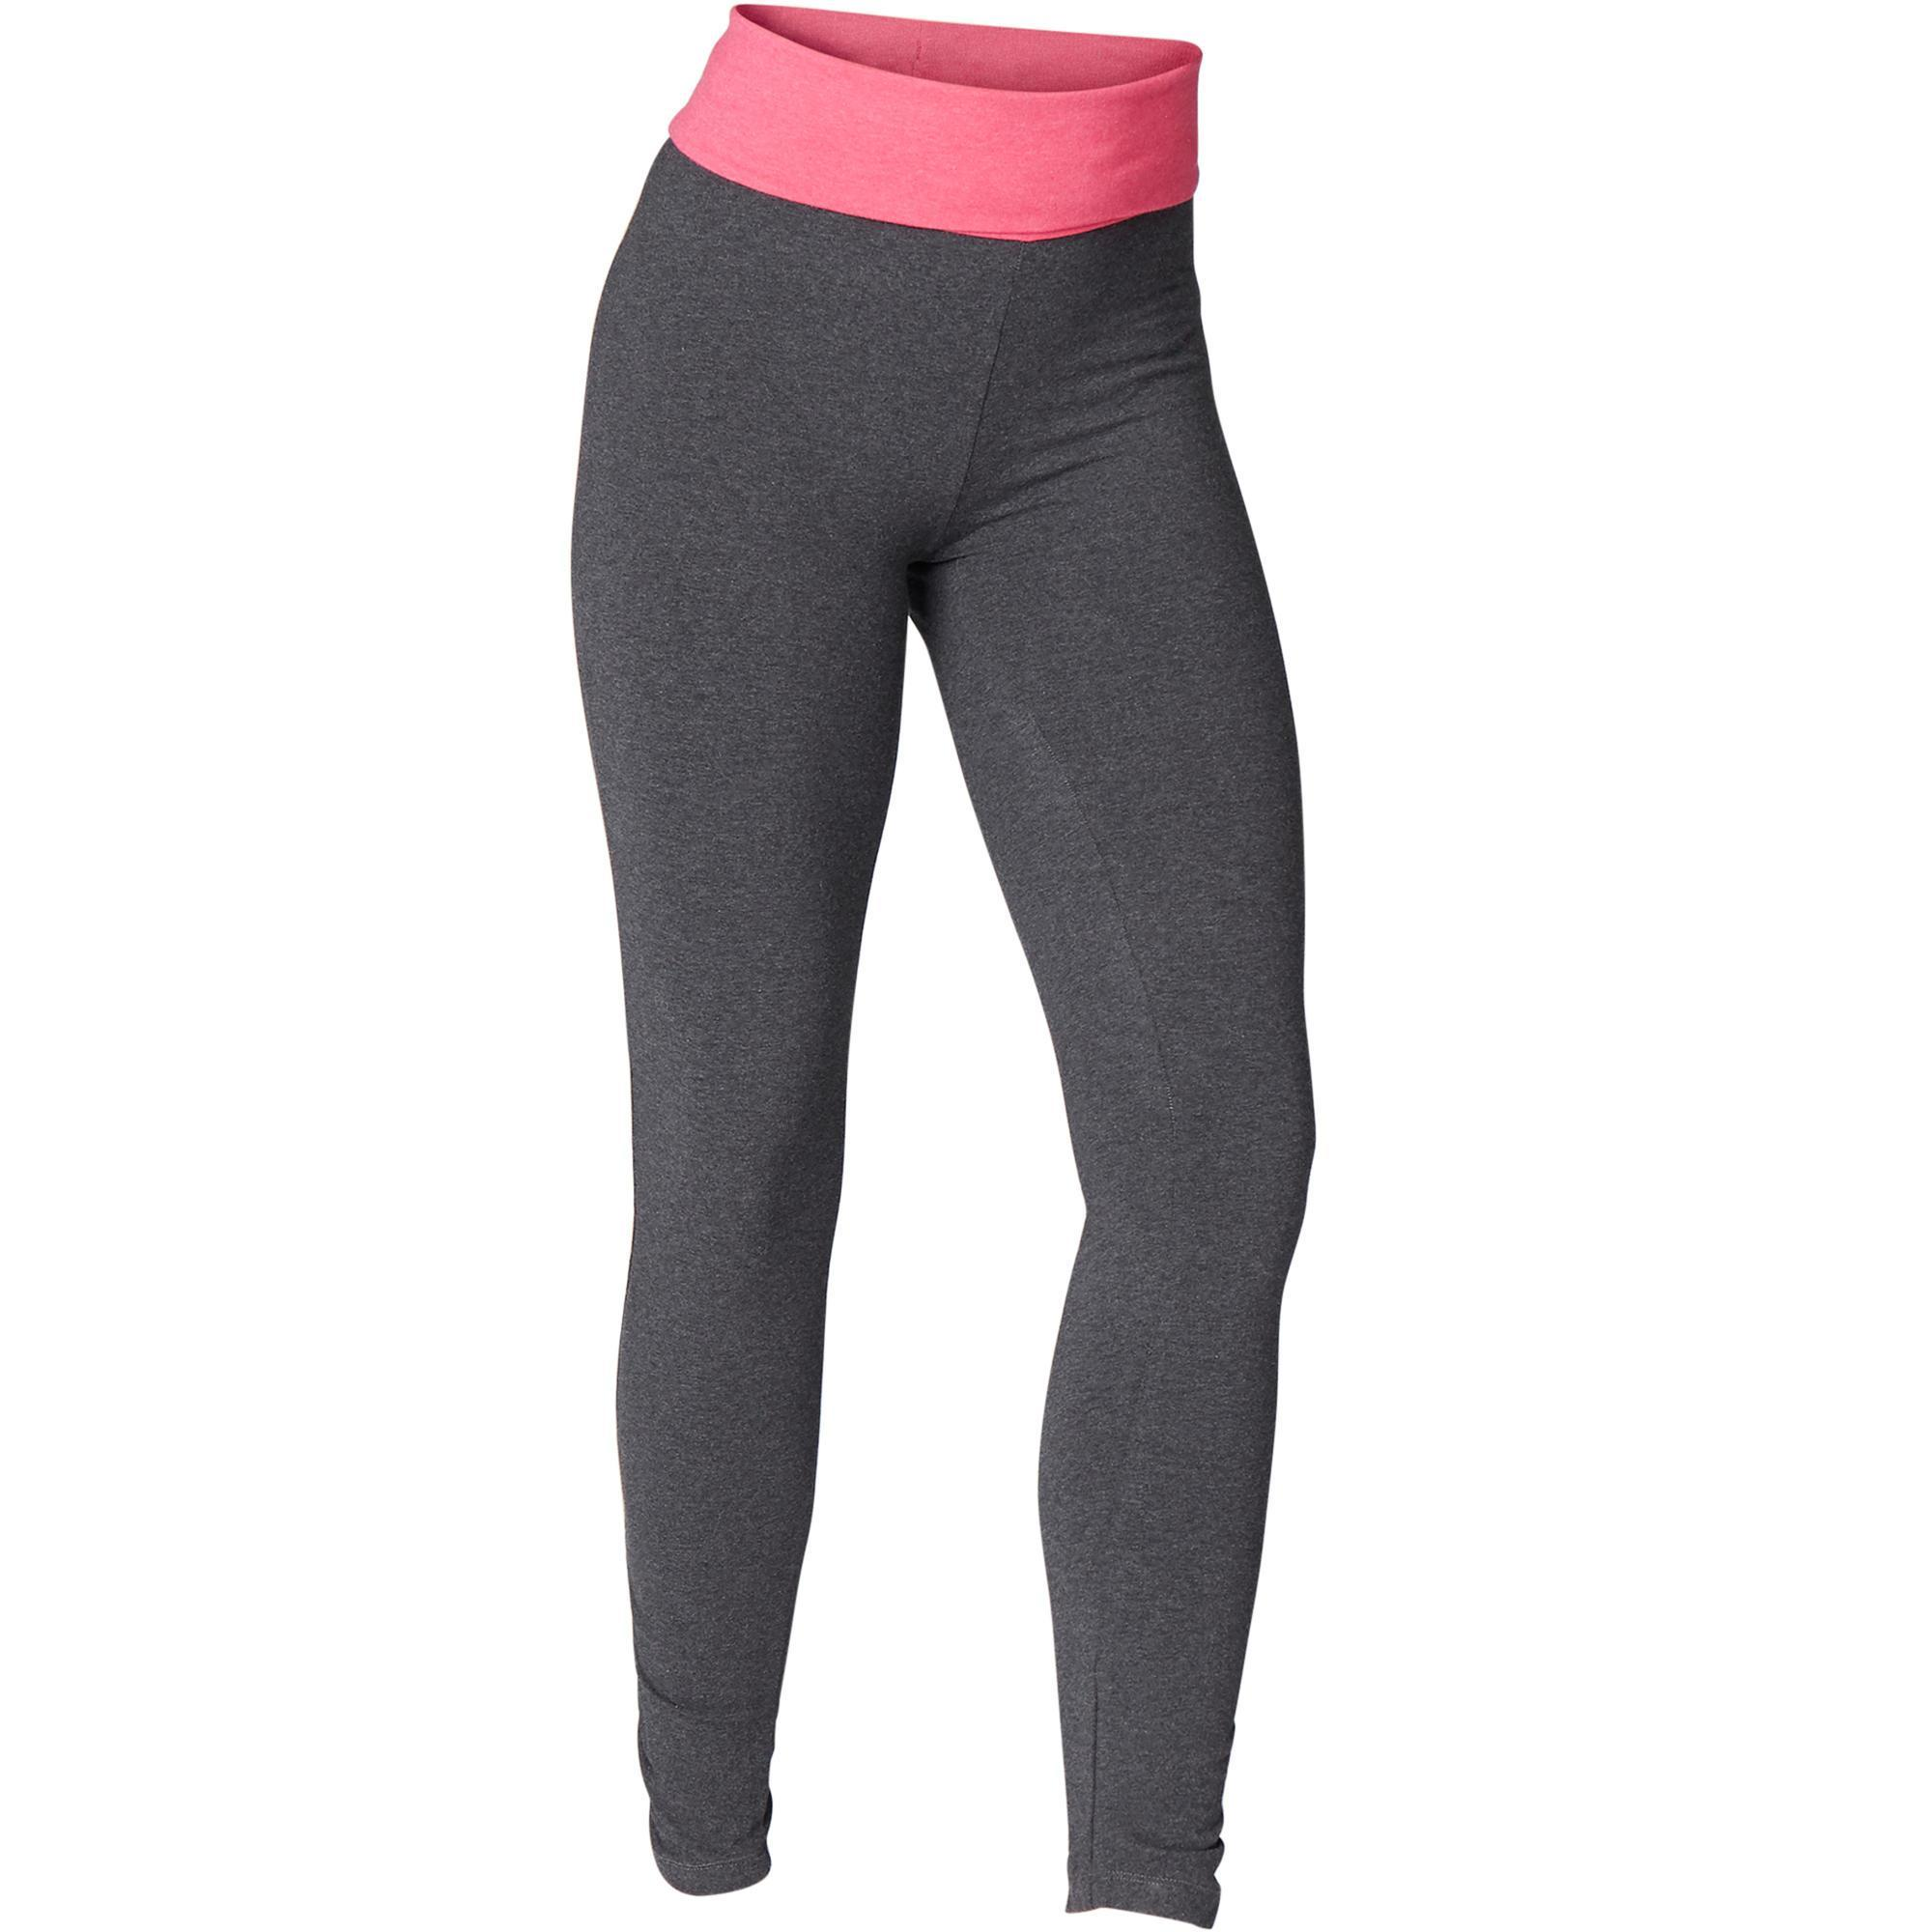 Leggings, Thights Damen | Günstig | DECATHLON